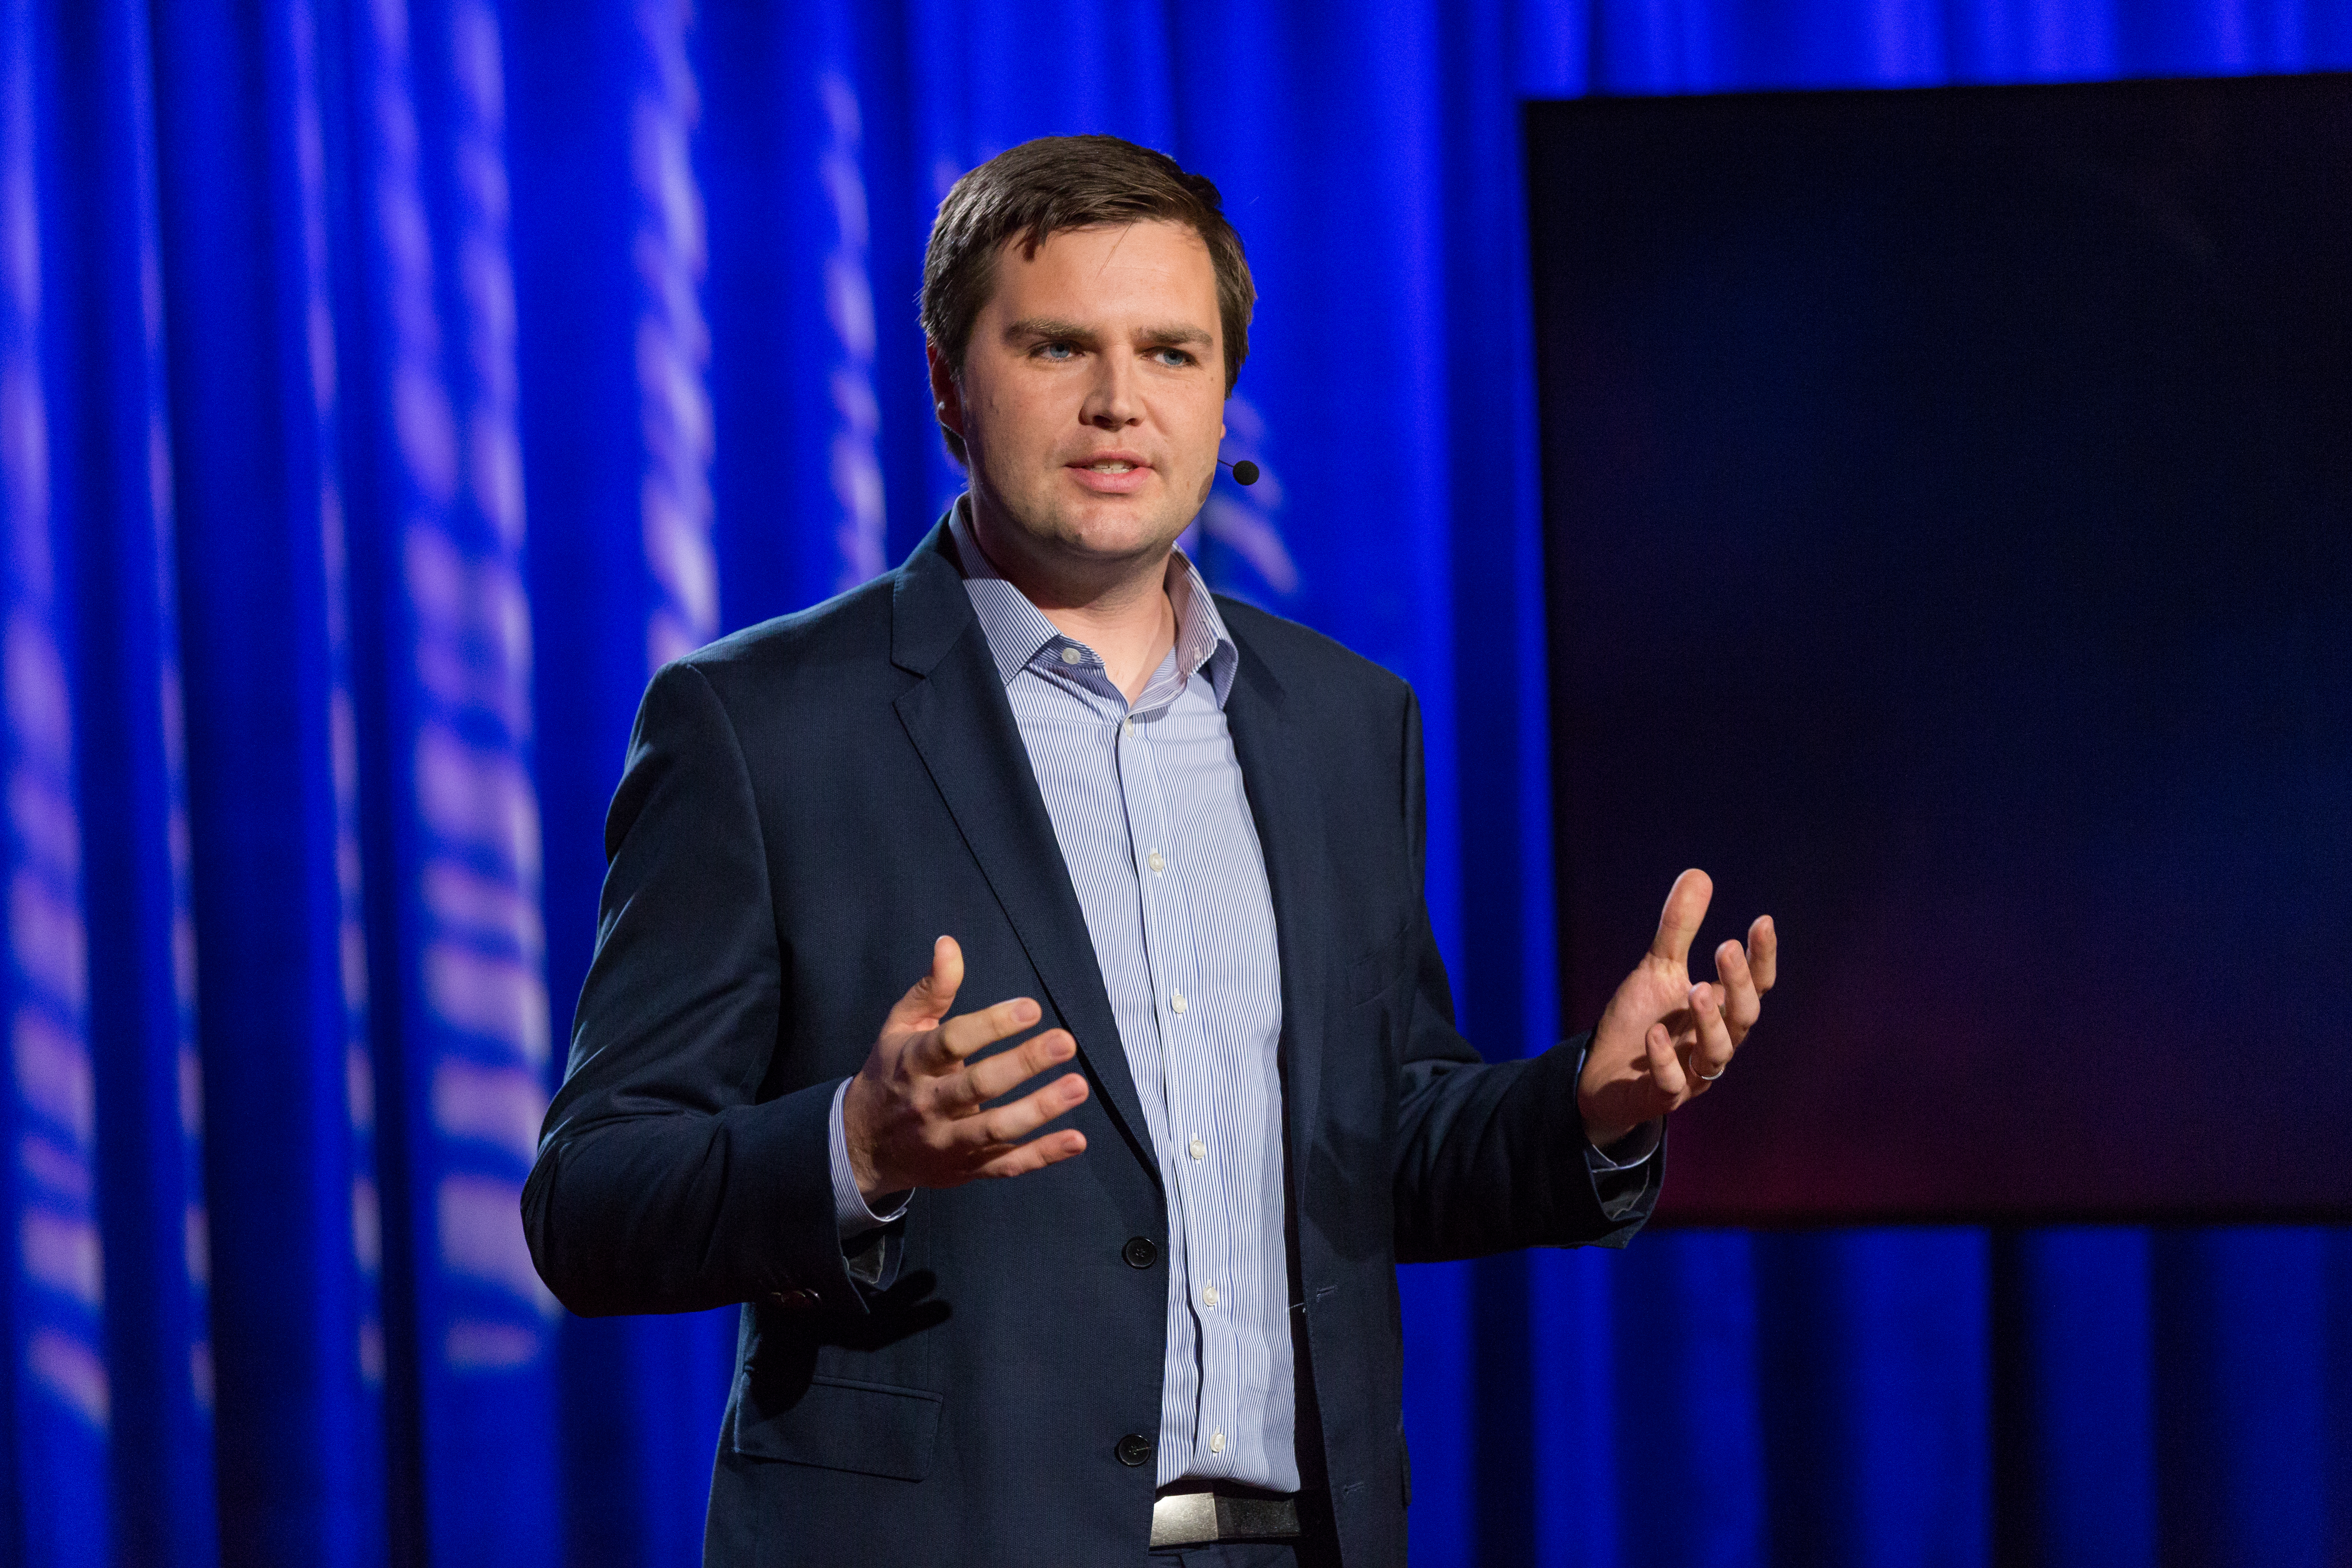 J.D. Vance speaks at TEDNYC - The Election Edition, September 7, 2016, New York, NY. (Photo: Ryan Lash / TED)